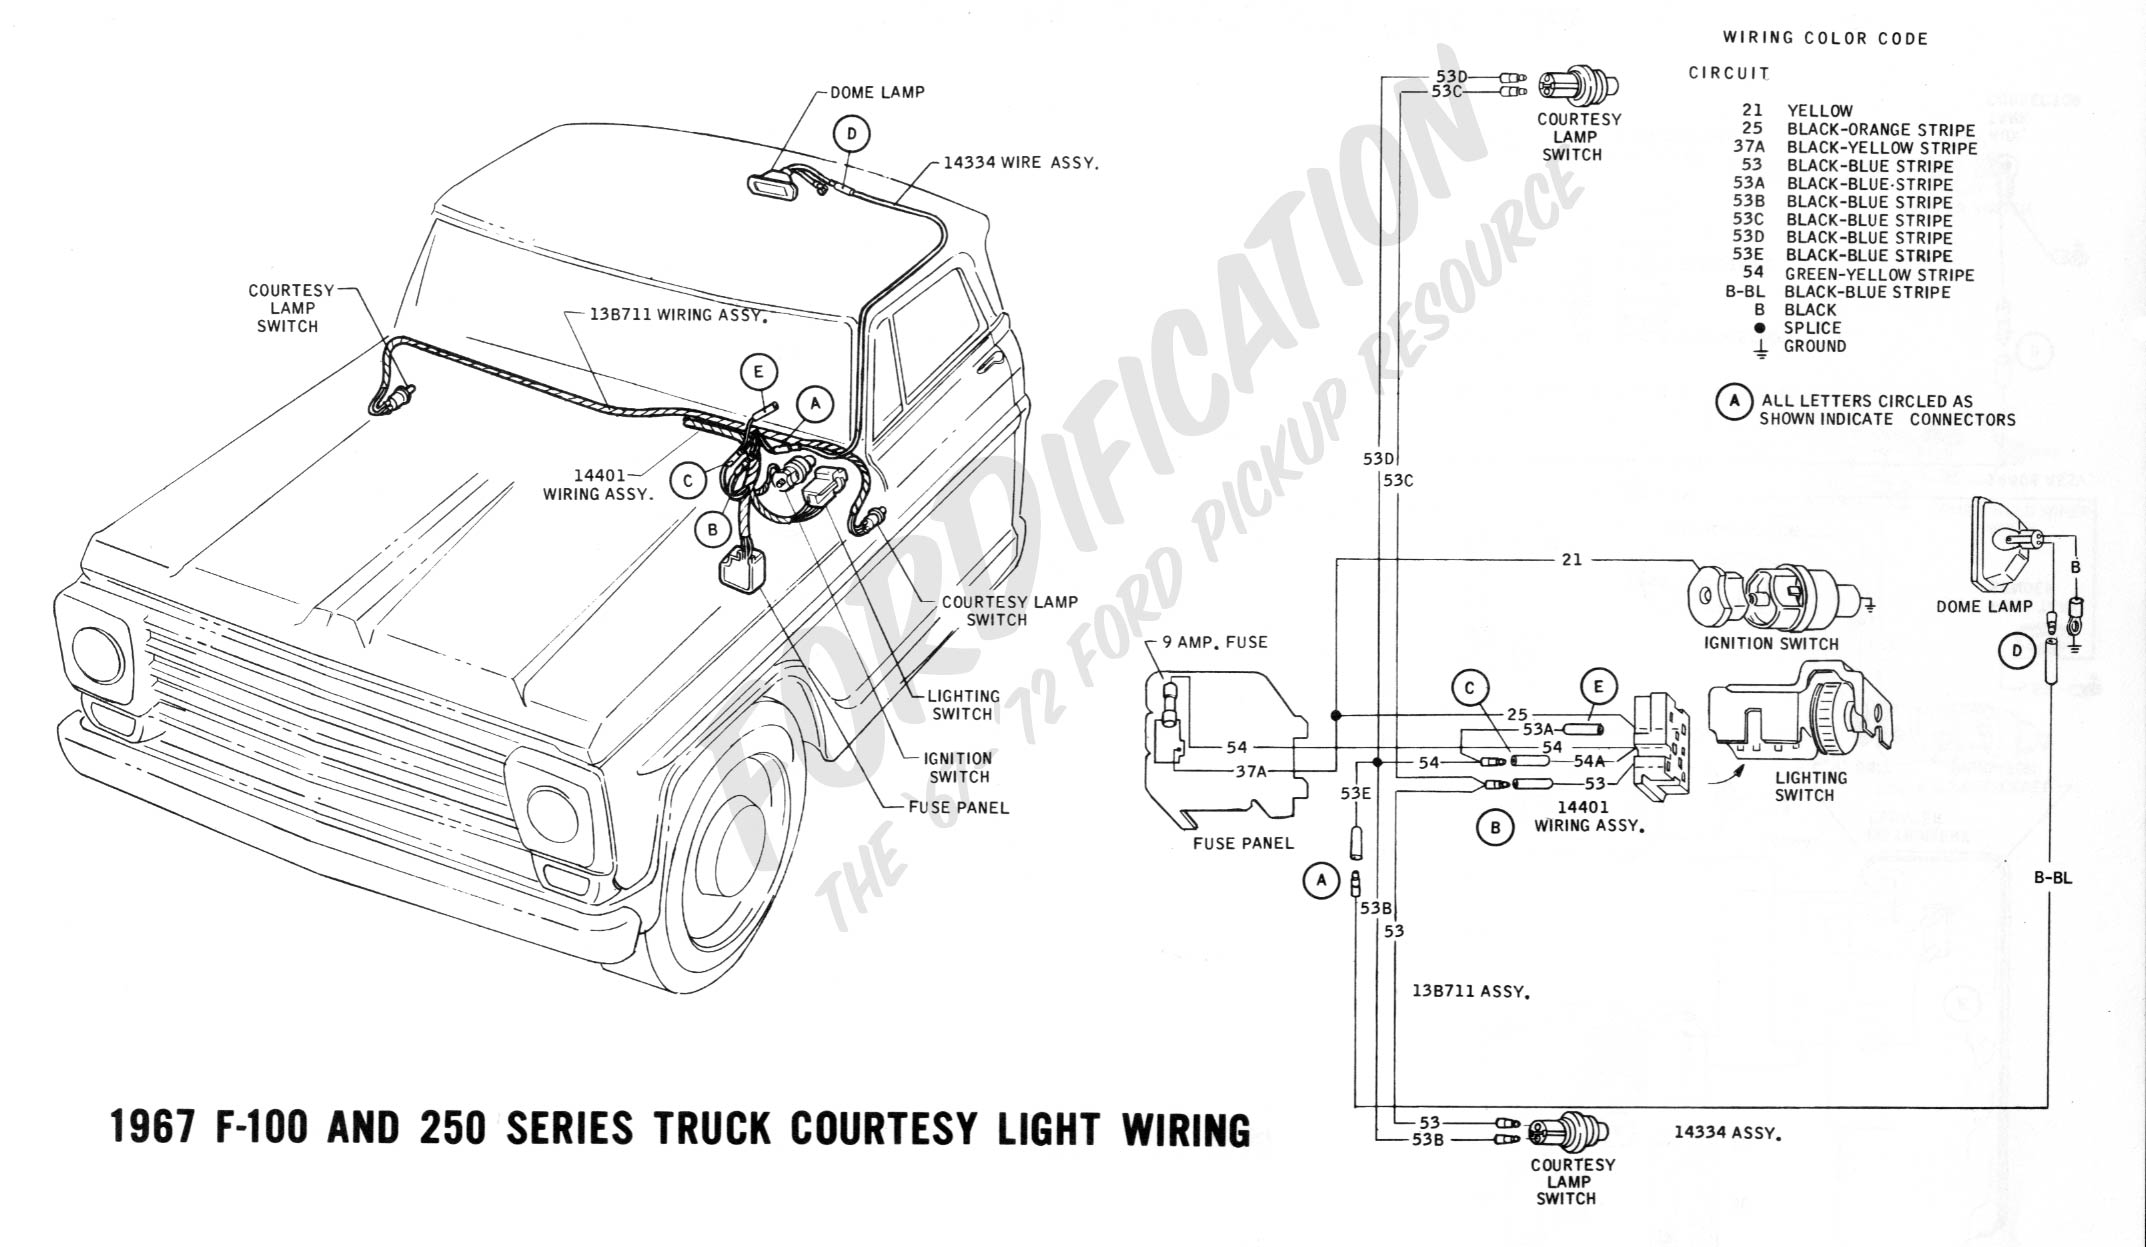 78 ford ignition switch wiring diagram - 97 dodge dakota stereo wiring  diagram for wiring diagram schematics  wiring diagram schematics